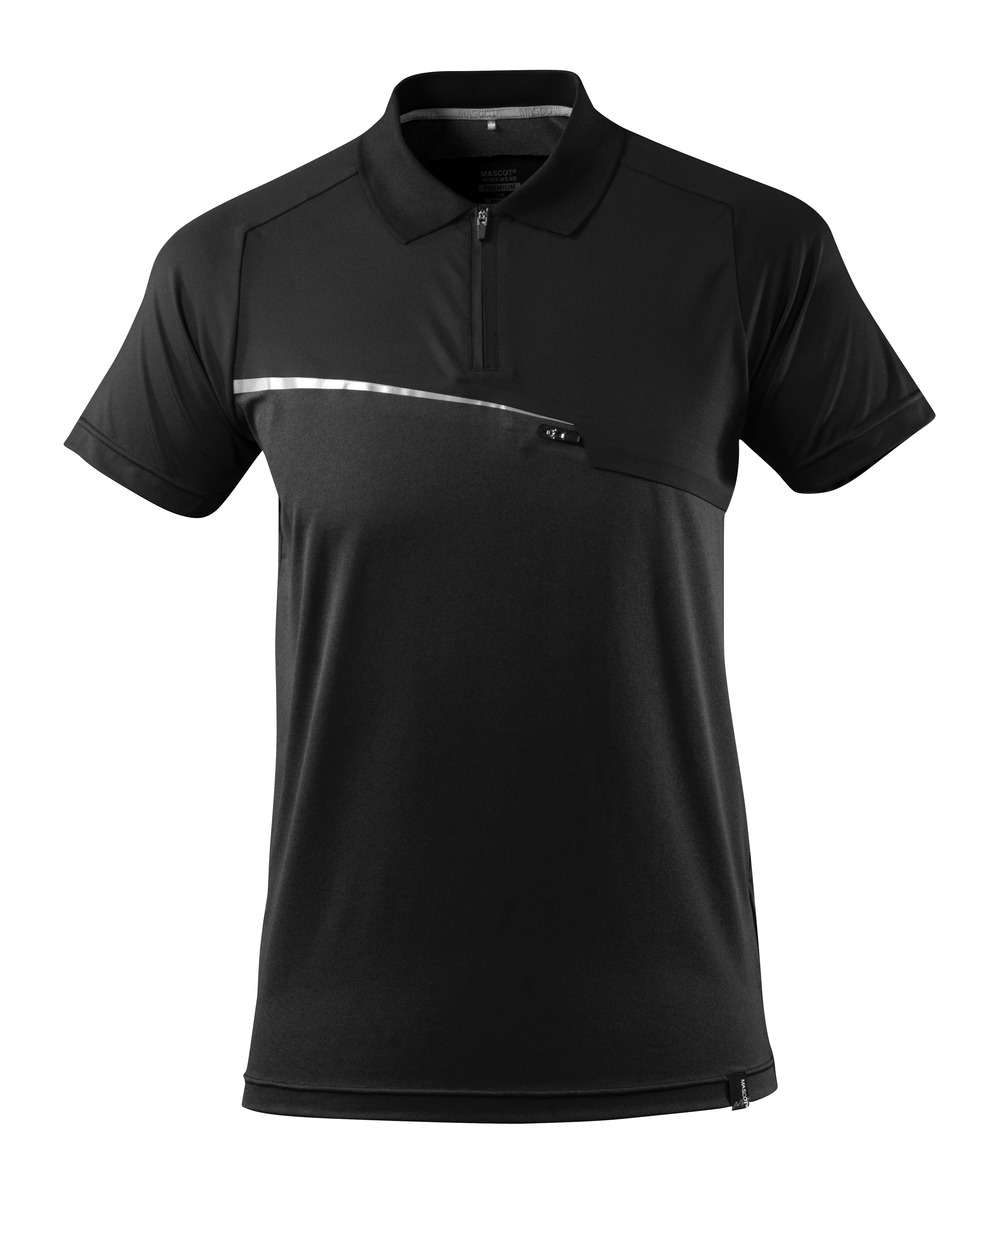 17283-945-09 Polo Shirt with chest pocket - black